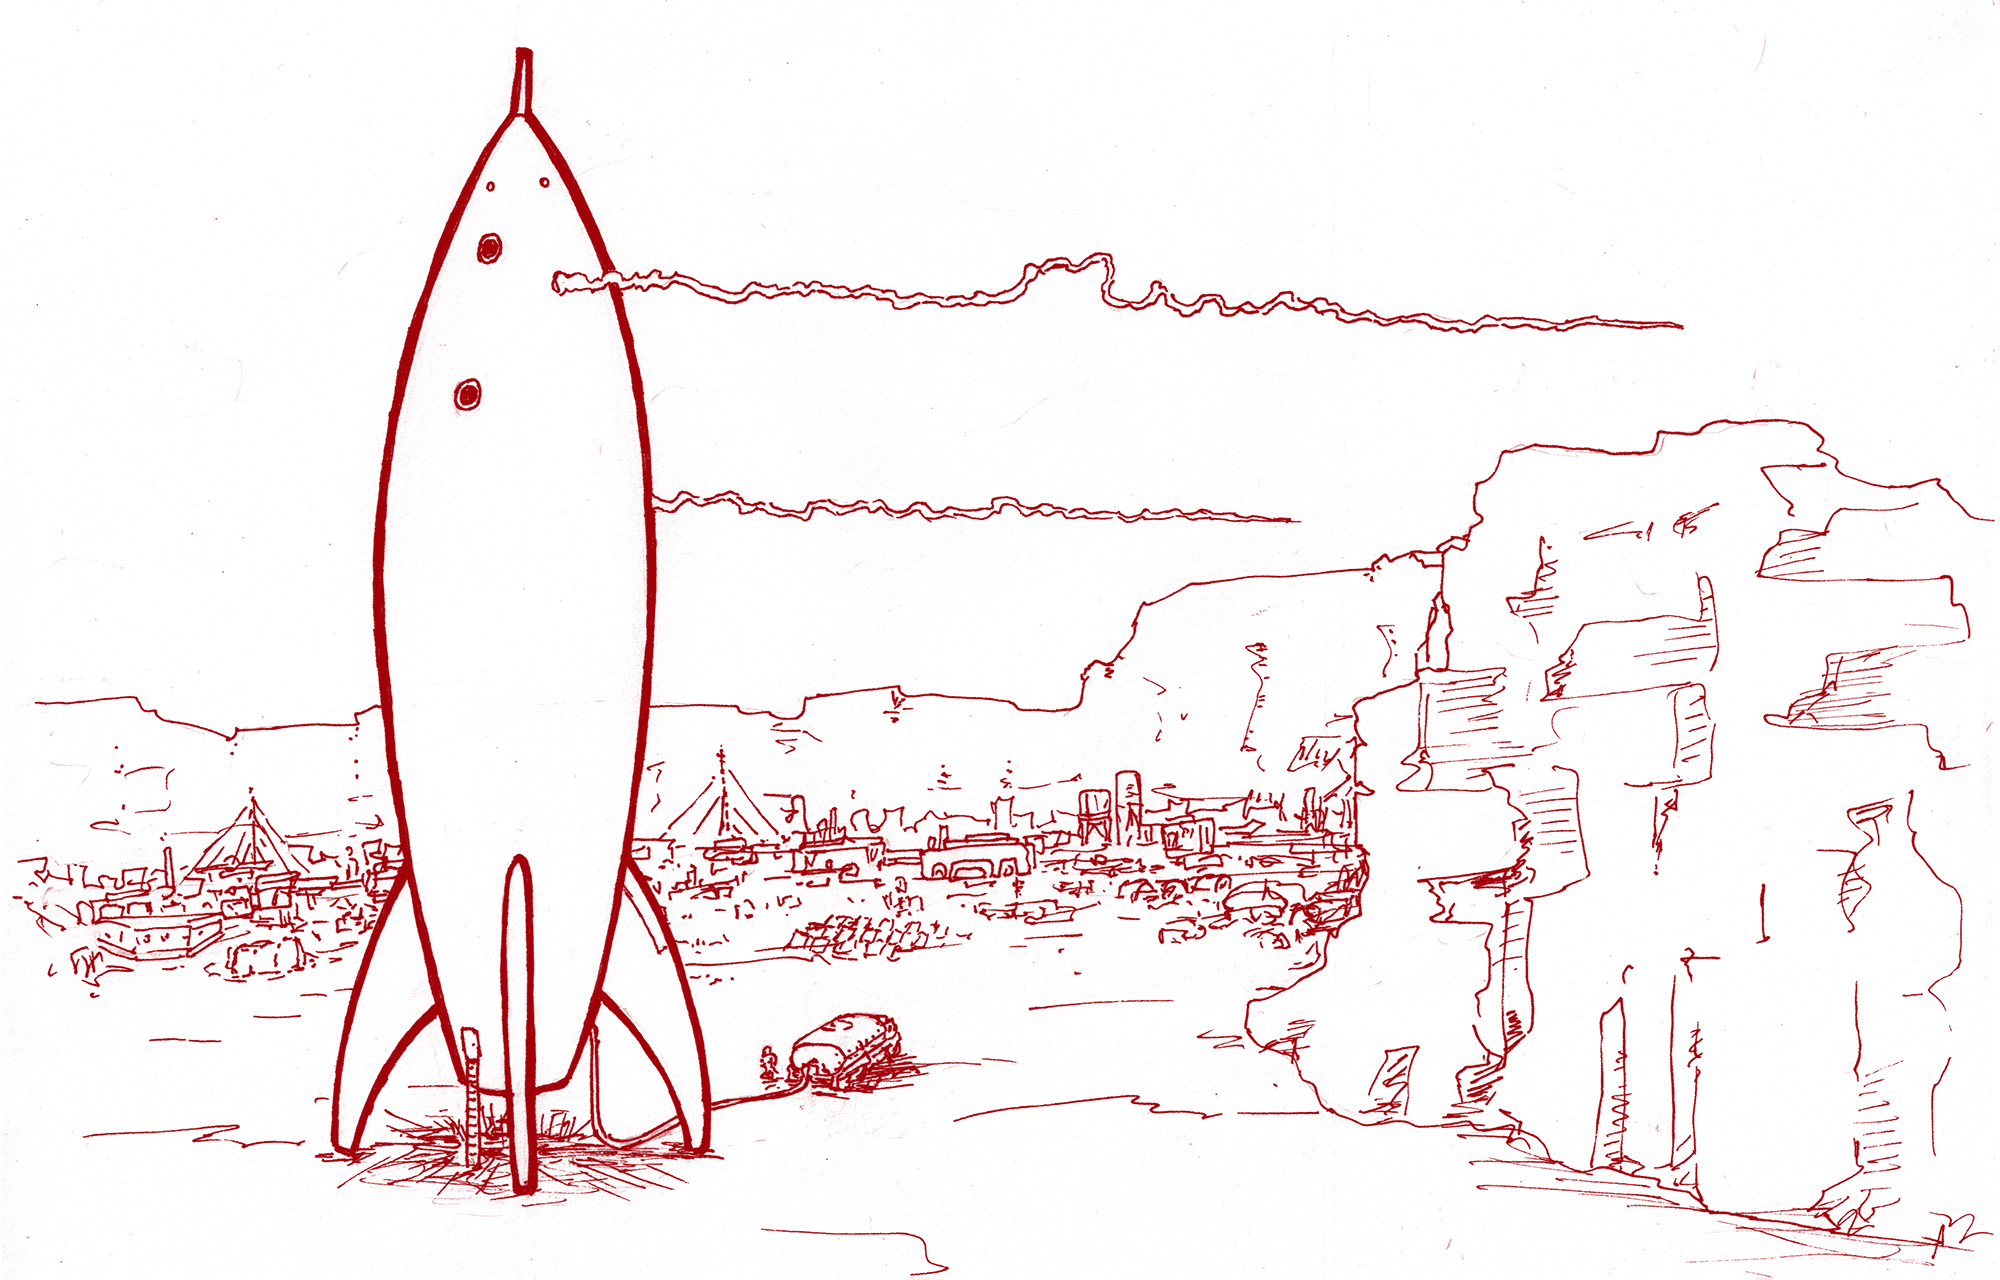 rocket getting ready to launch from an outpost on Mars. Original artwork by Dana Burman